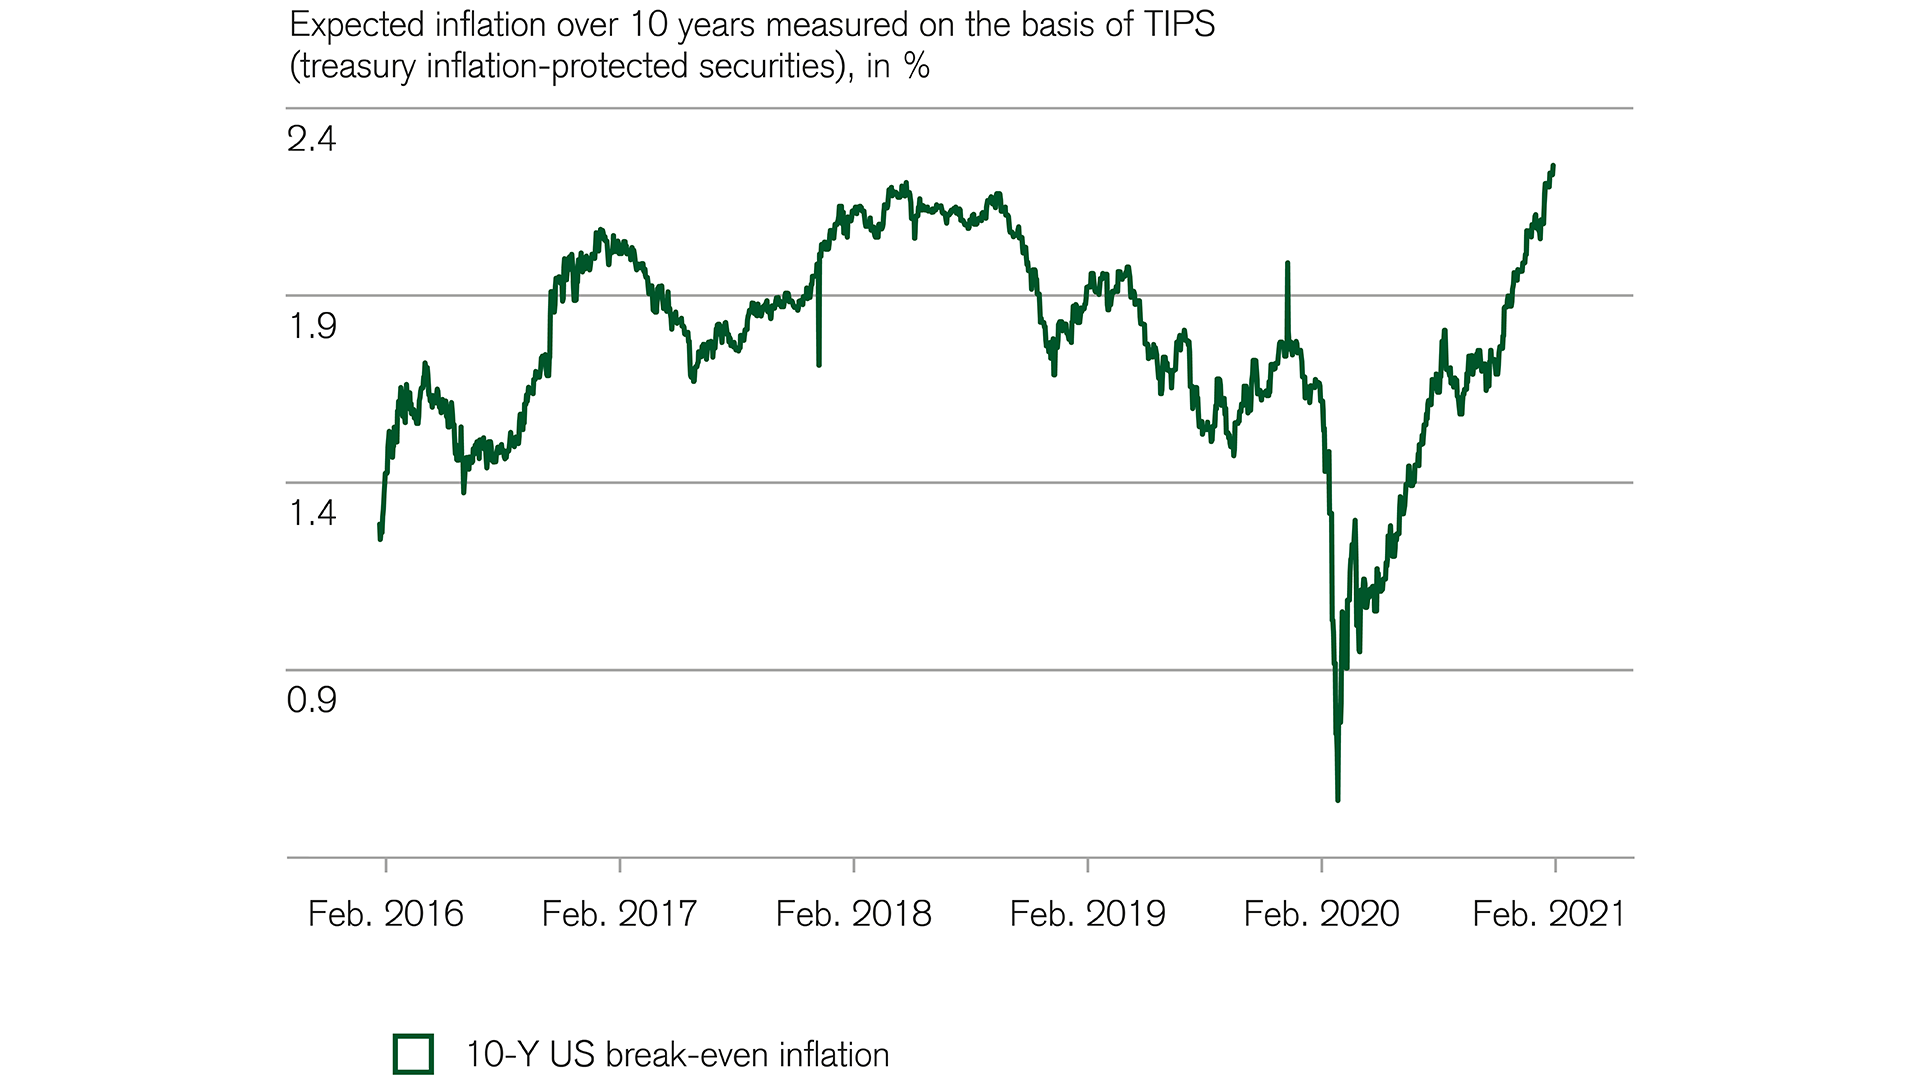 Financial markets: US inflation expectations increase